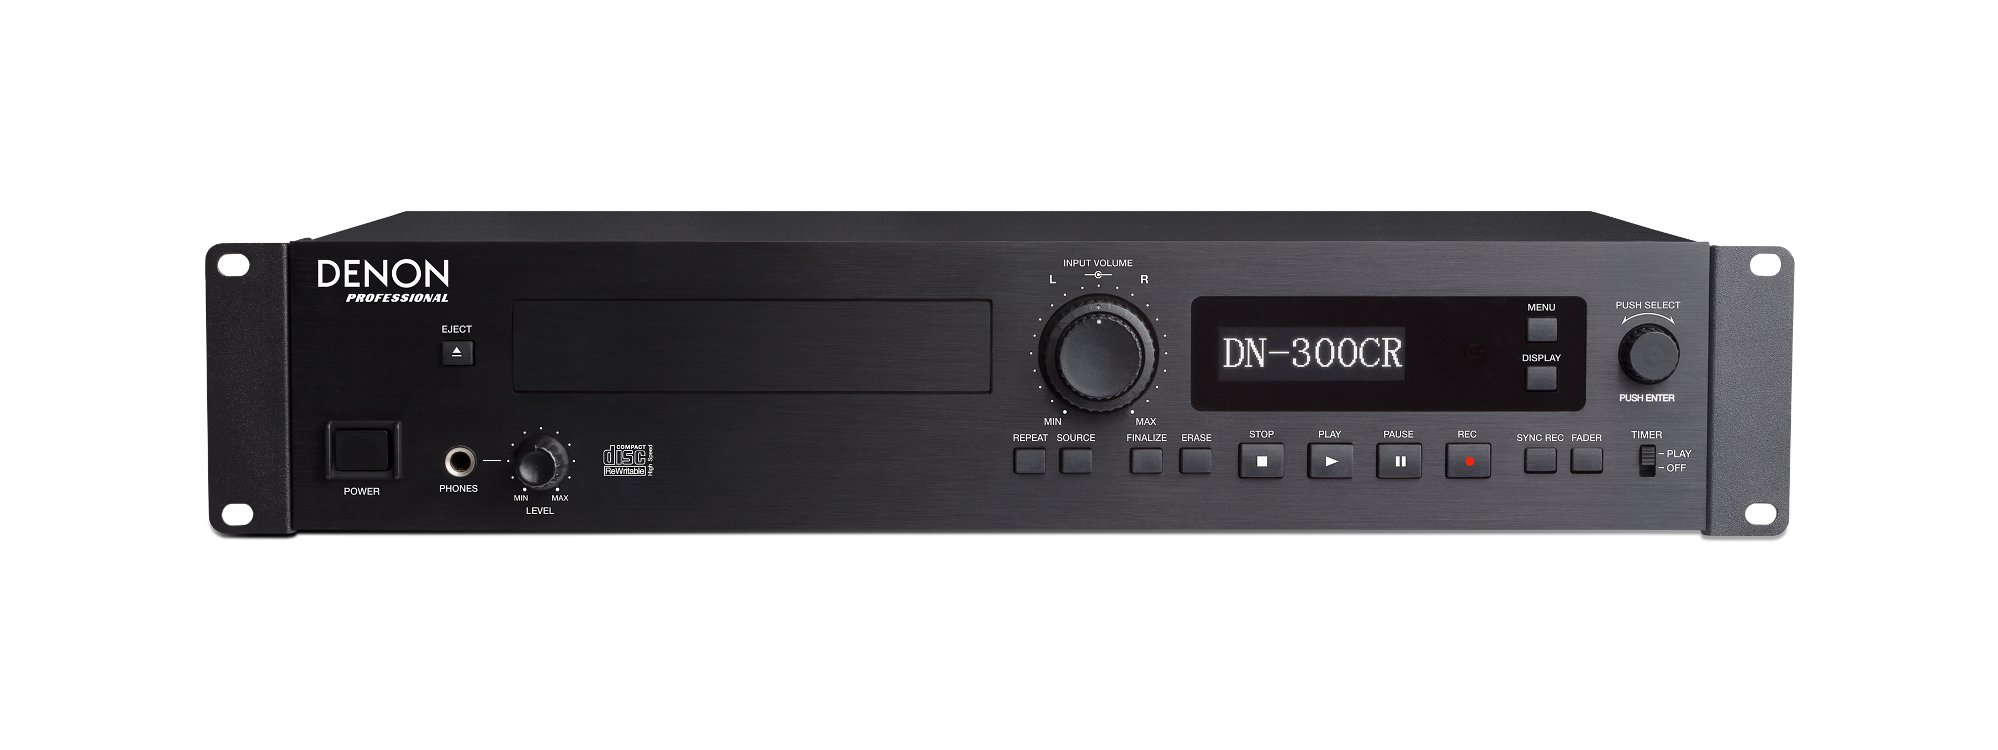 CD-R & CD-RW Recorder and Player